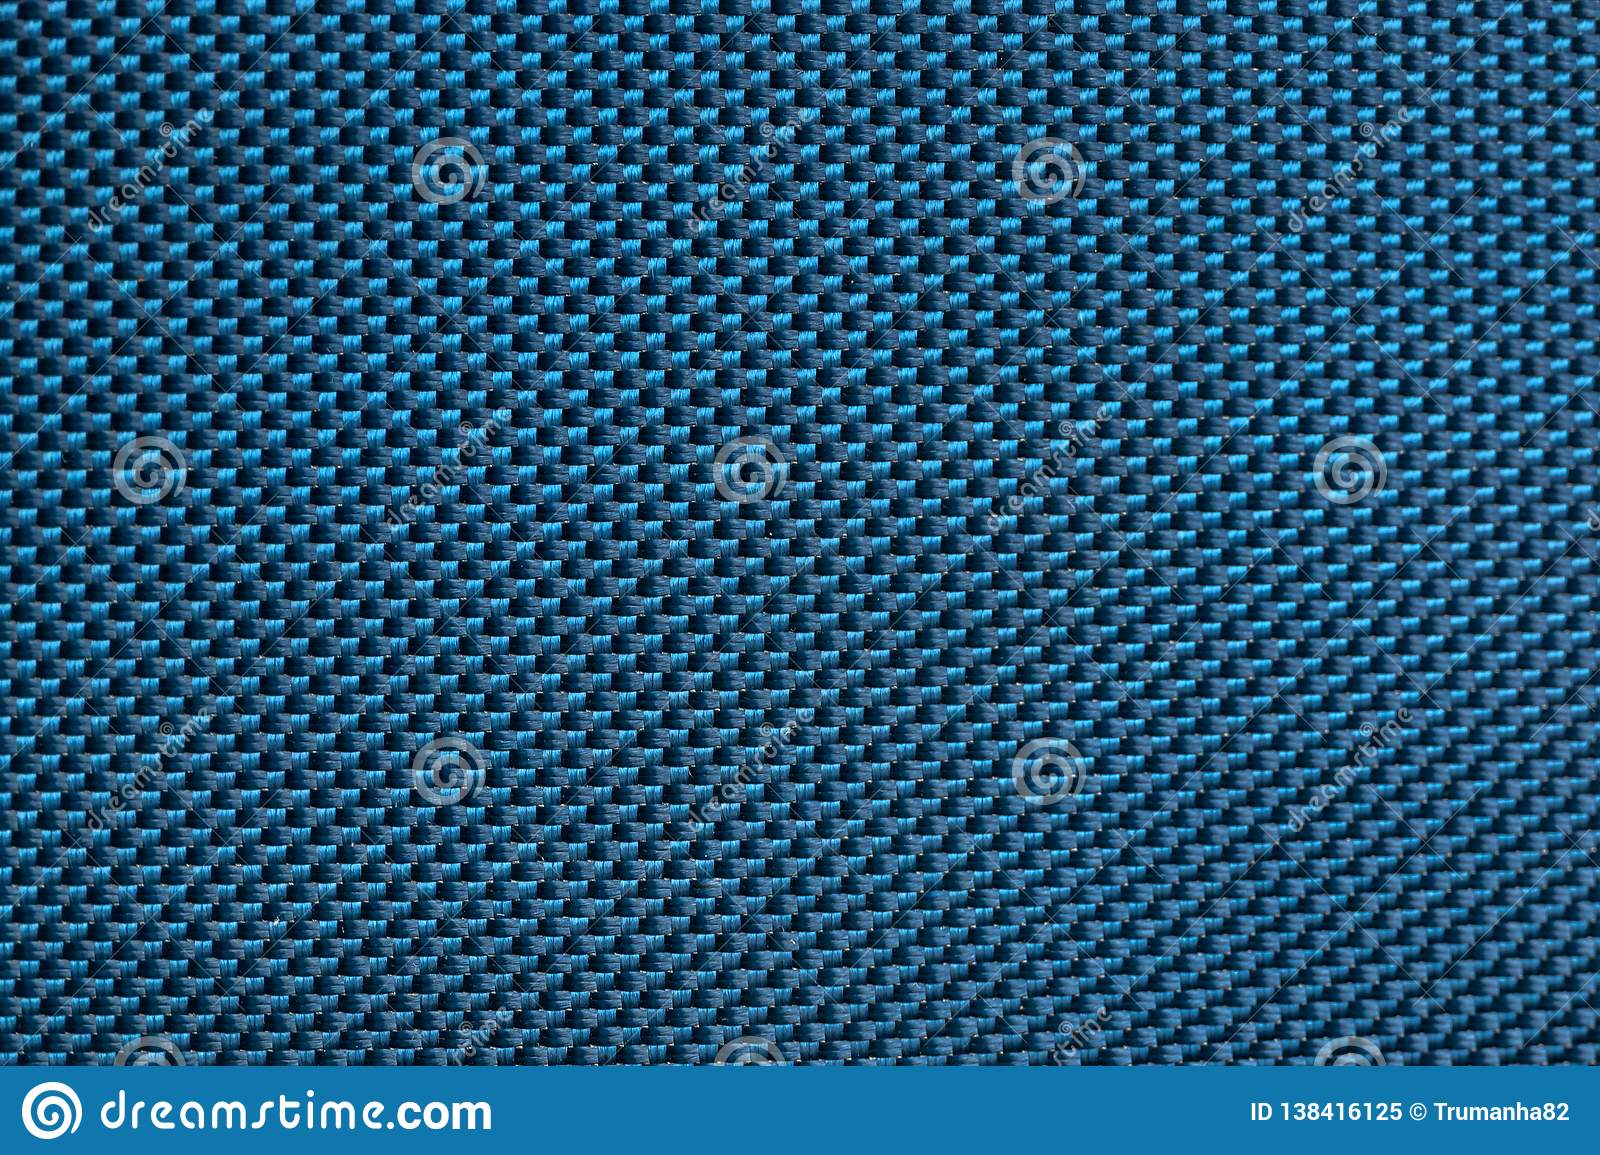 Seamless Texture of Blue Carbon Fibers Cloth